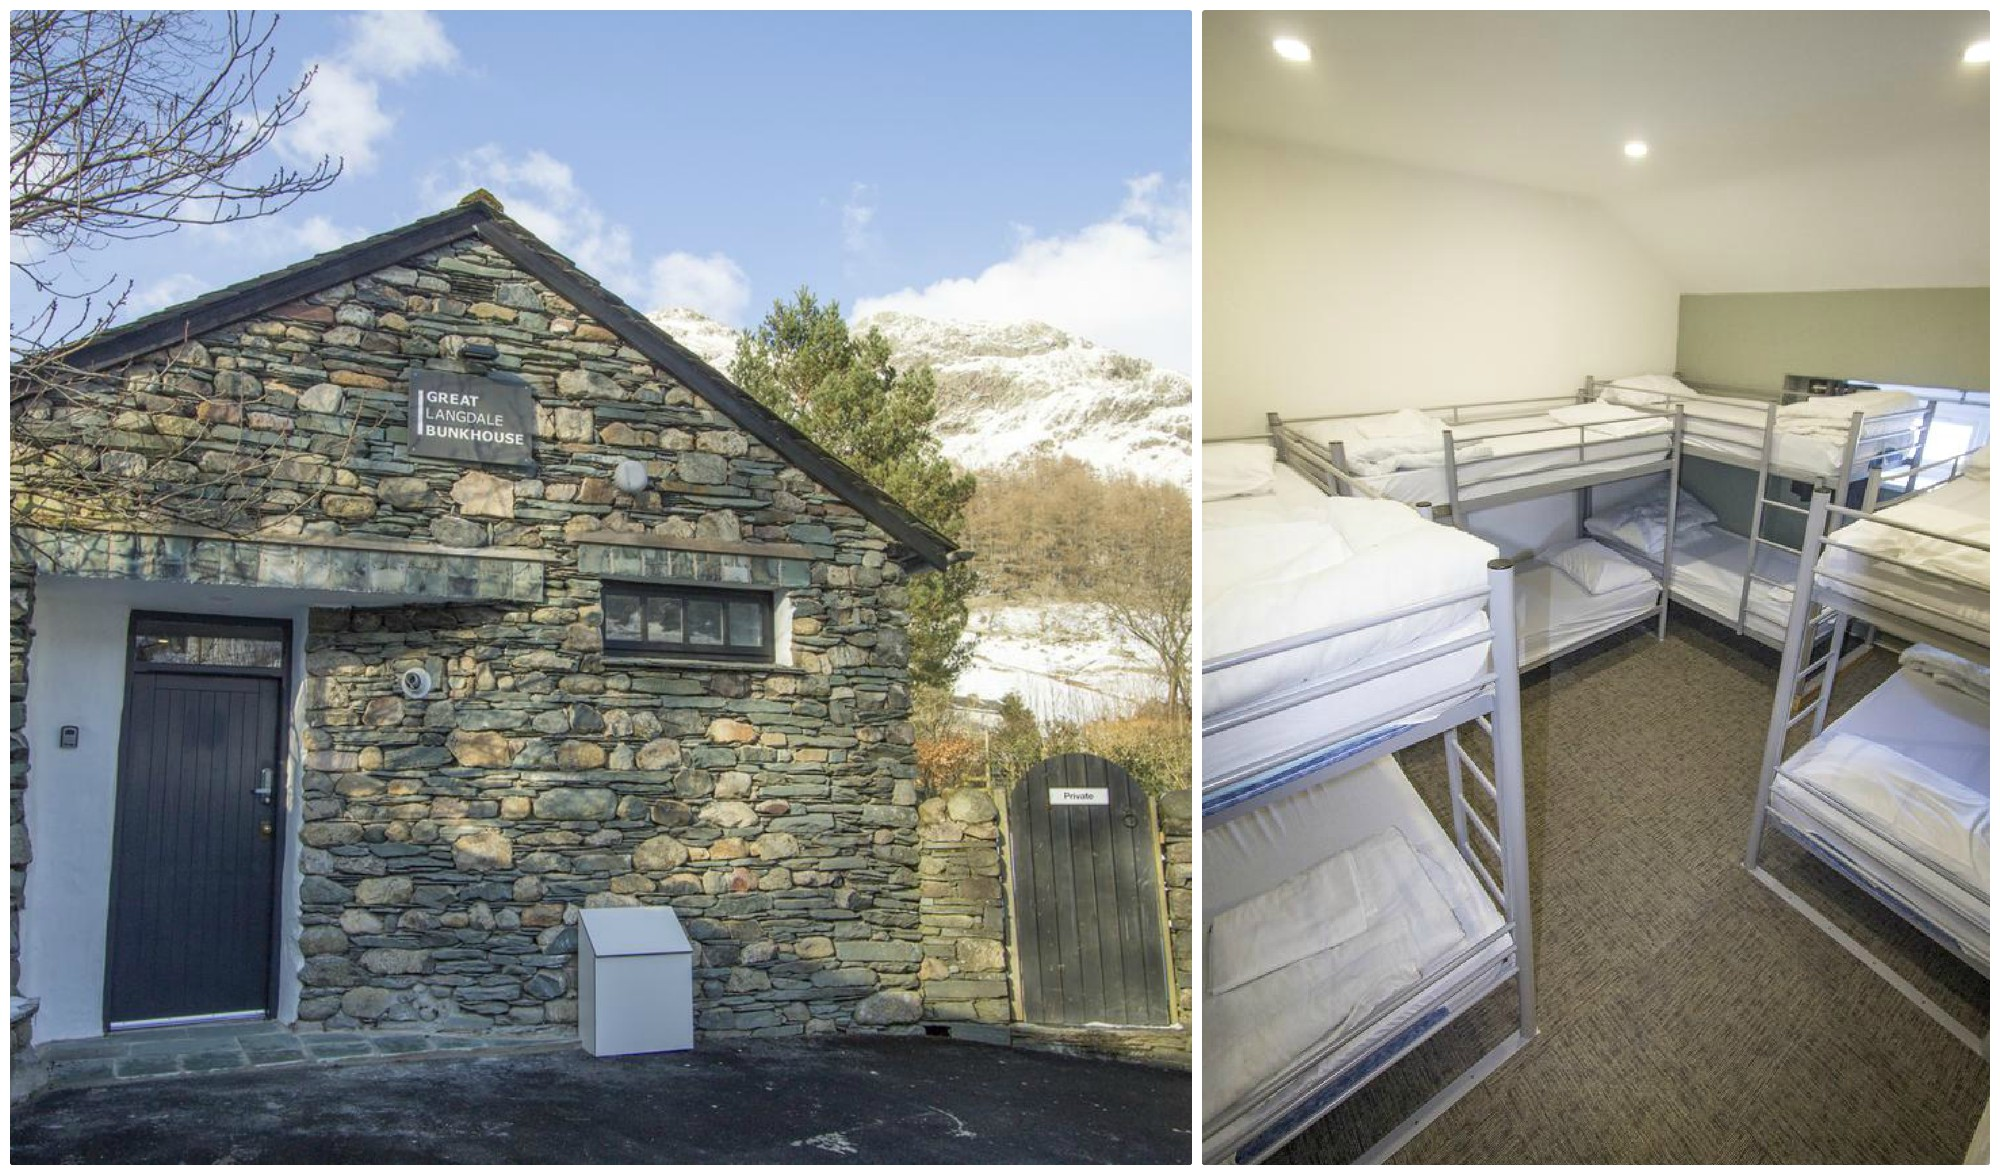 dog friendly bunkhouse at the foot of the Langdales